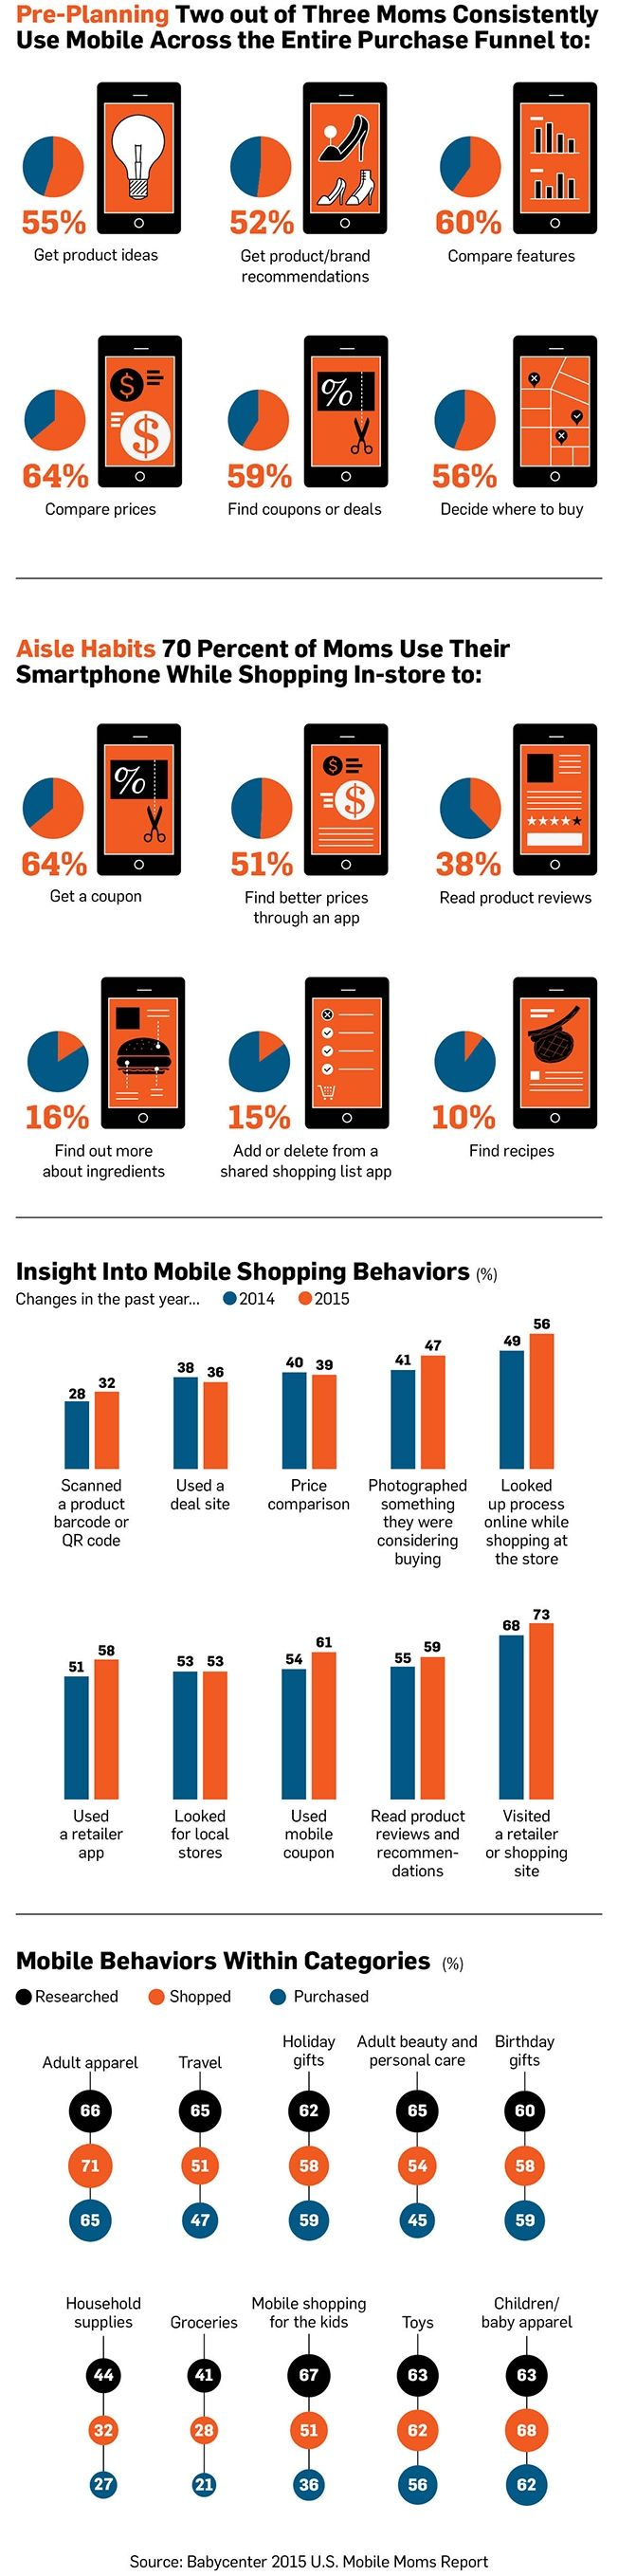 For Moms, Mobile Is Now a Vital Part of the Shopping Experience